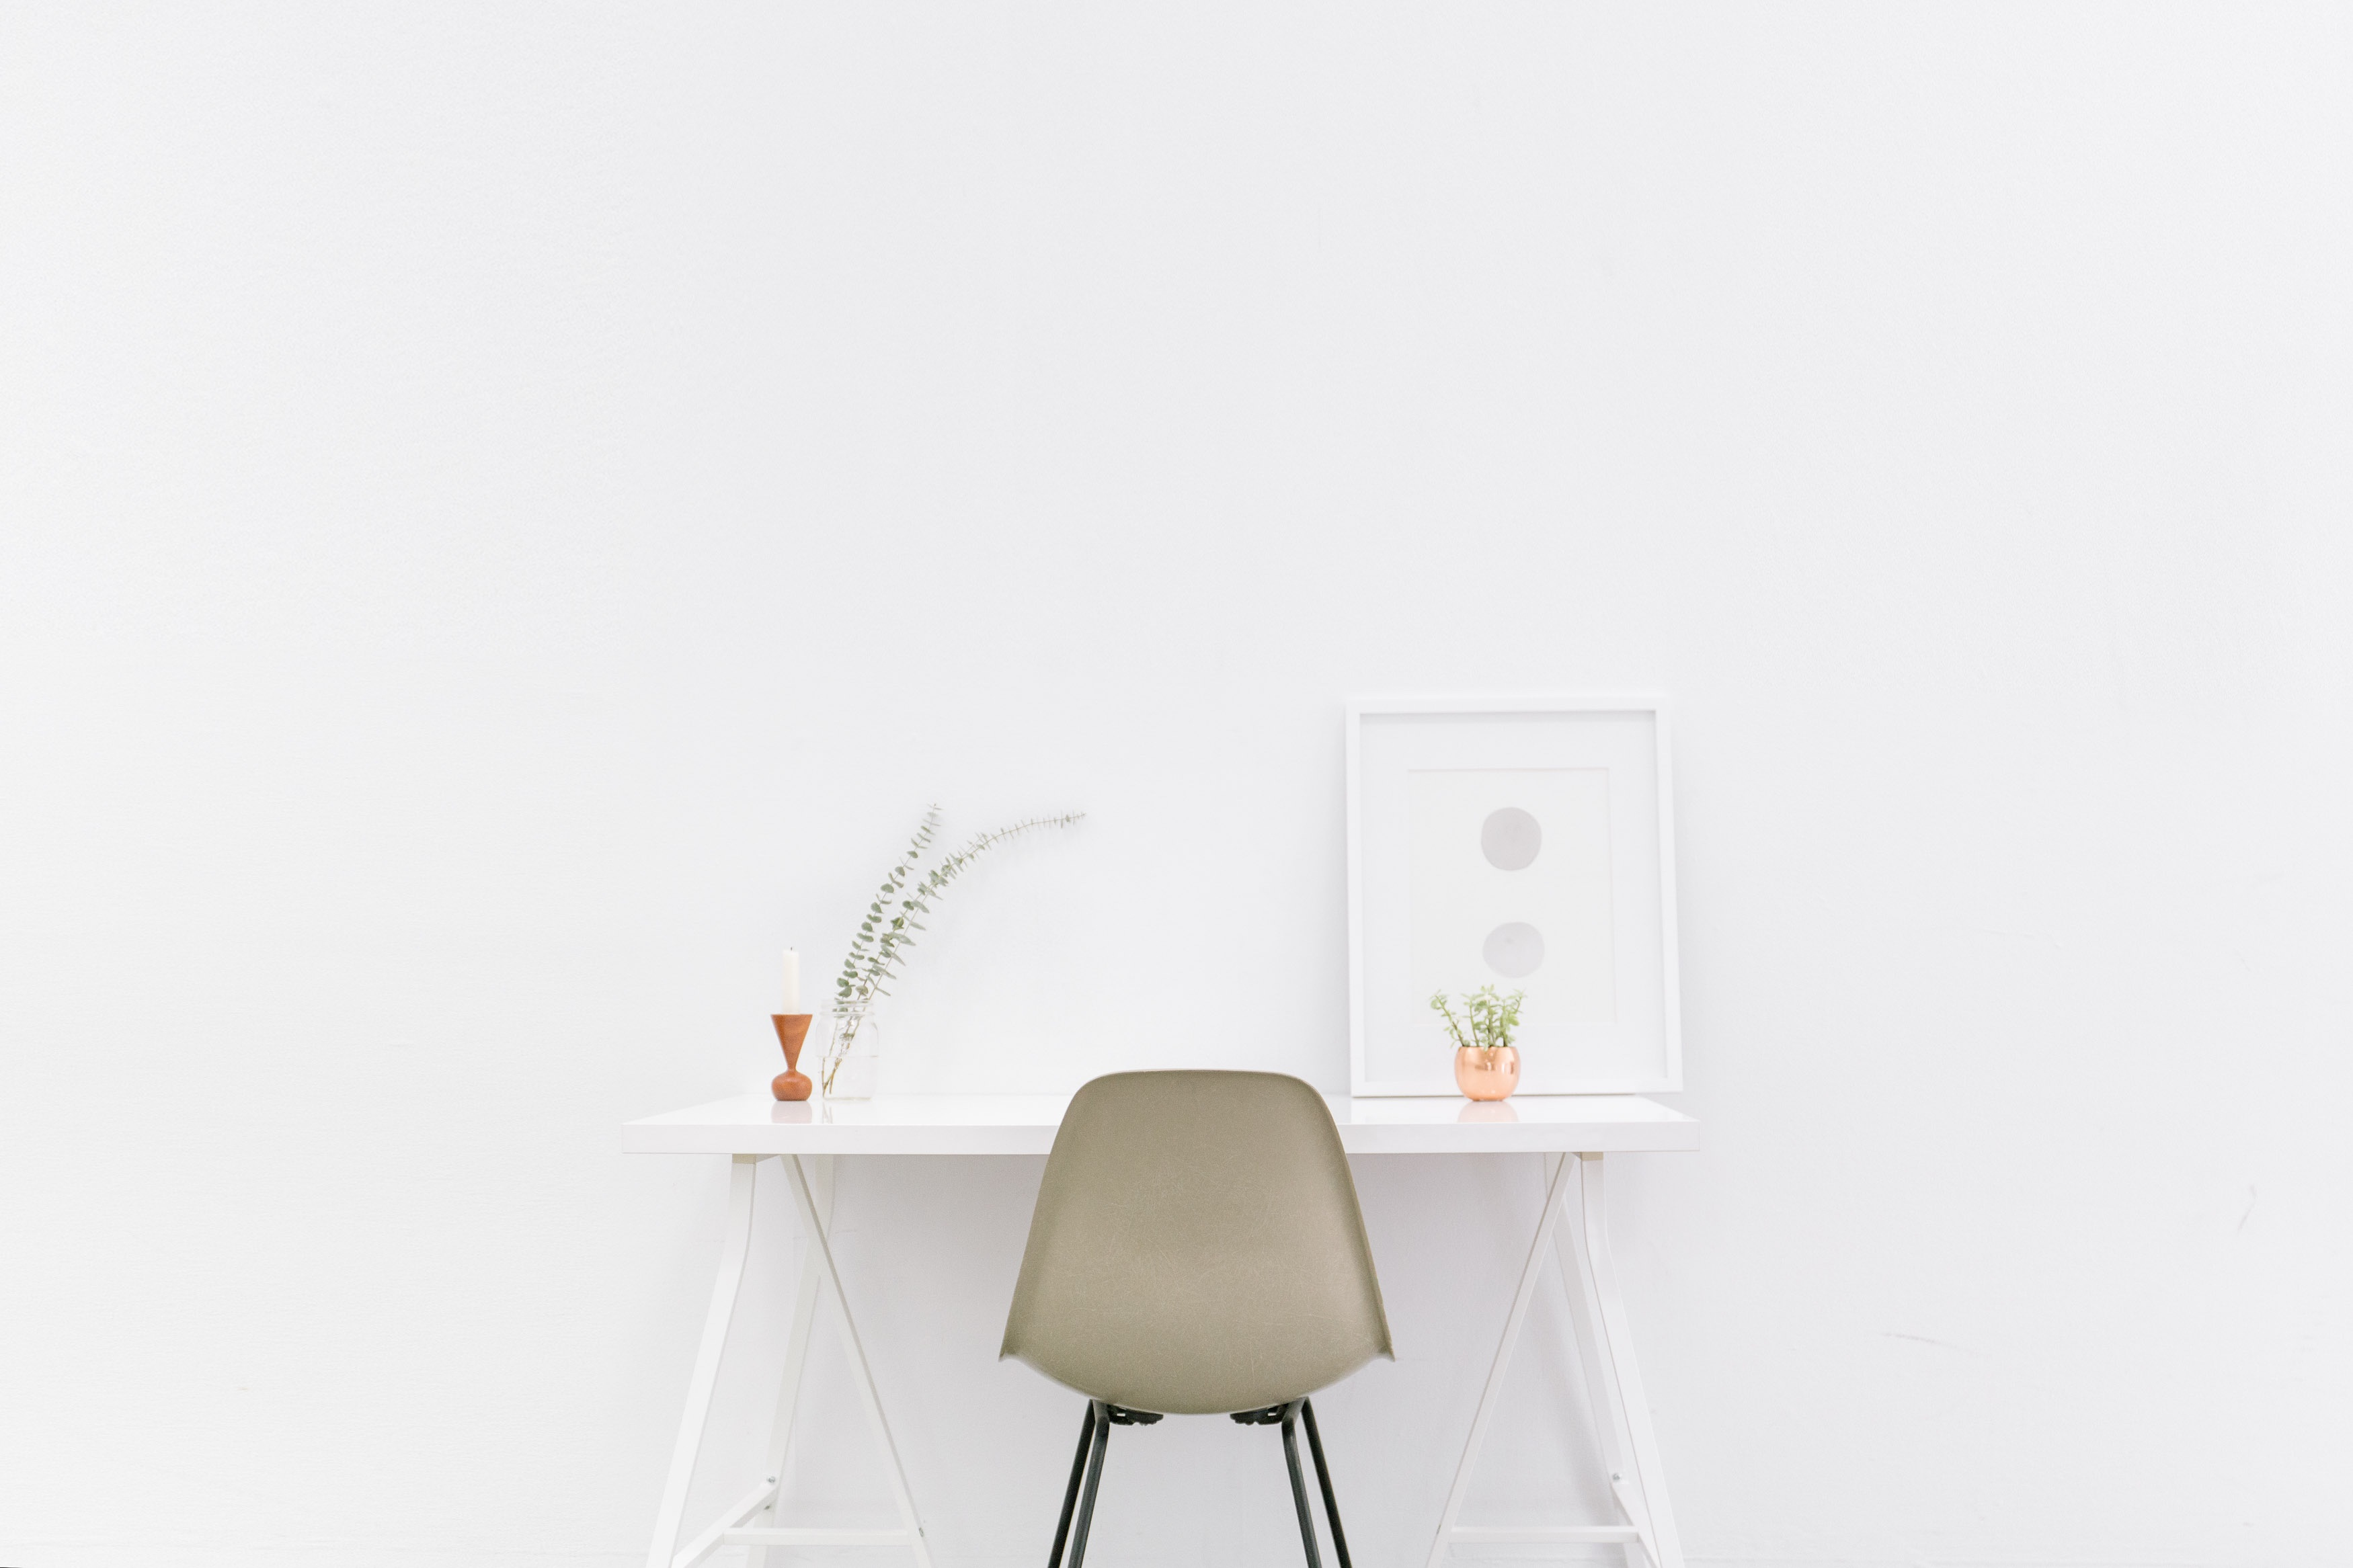 Minimalist Desk Chair Minimal Desk Office Chair Free Stock Photo Negativespace